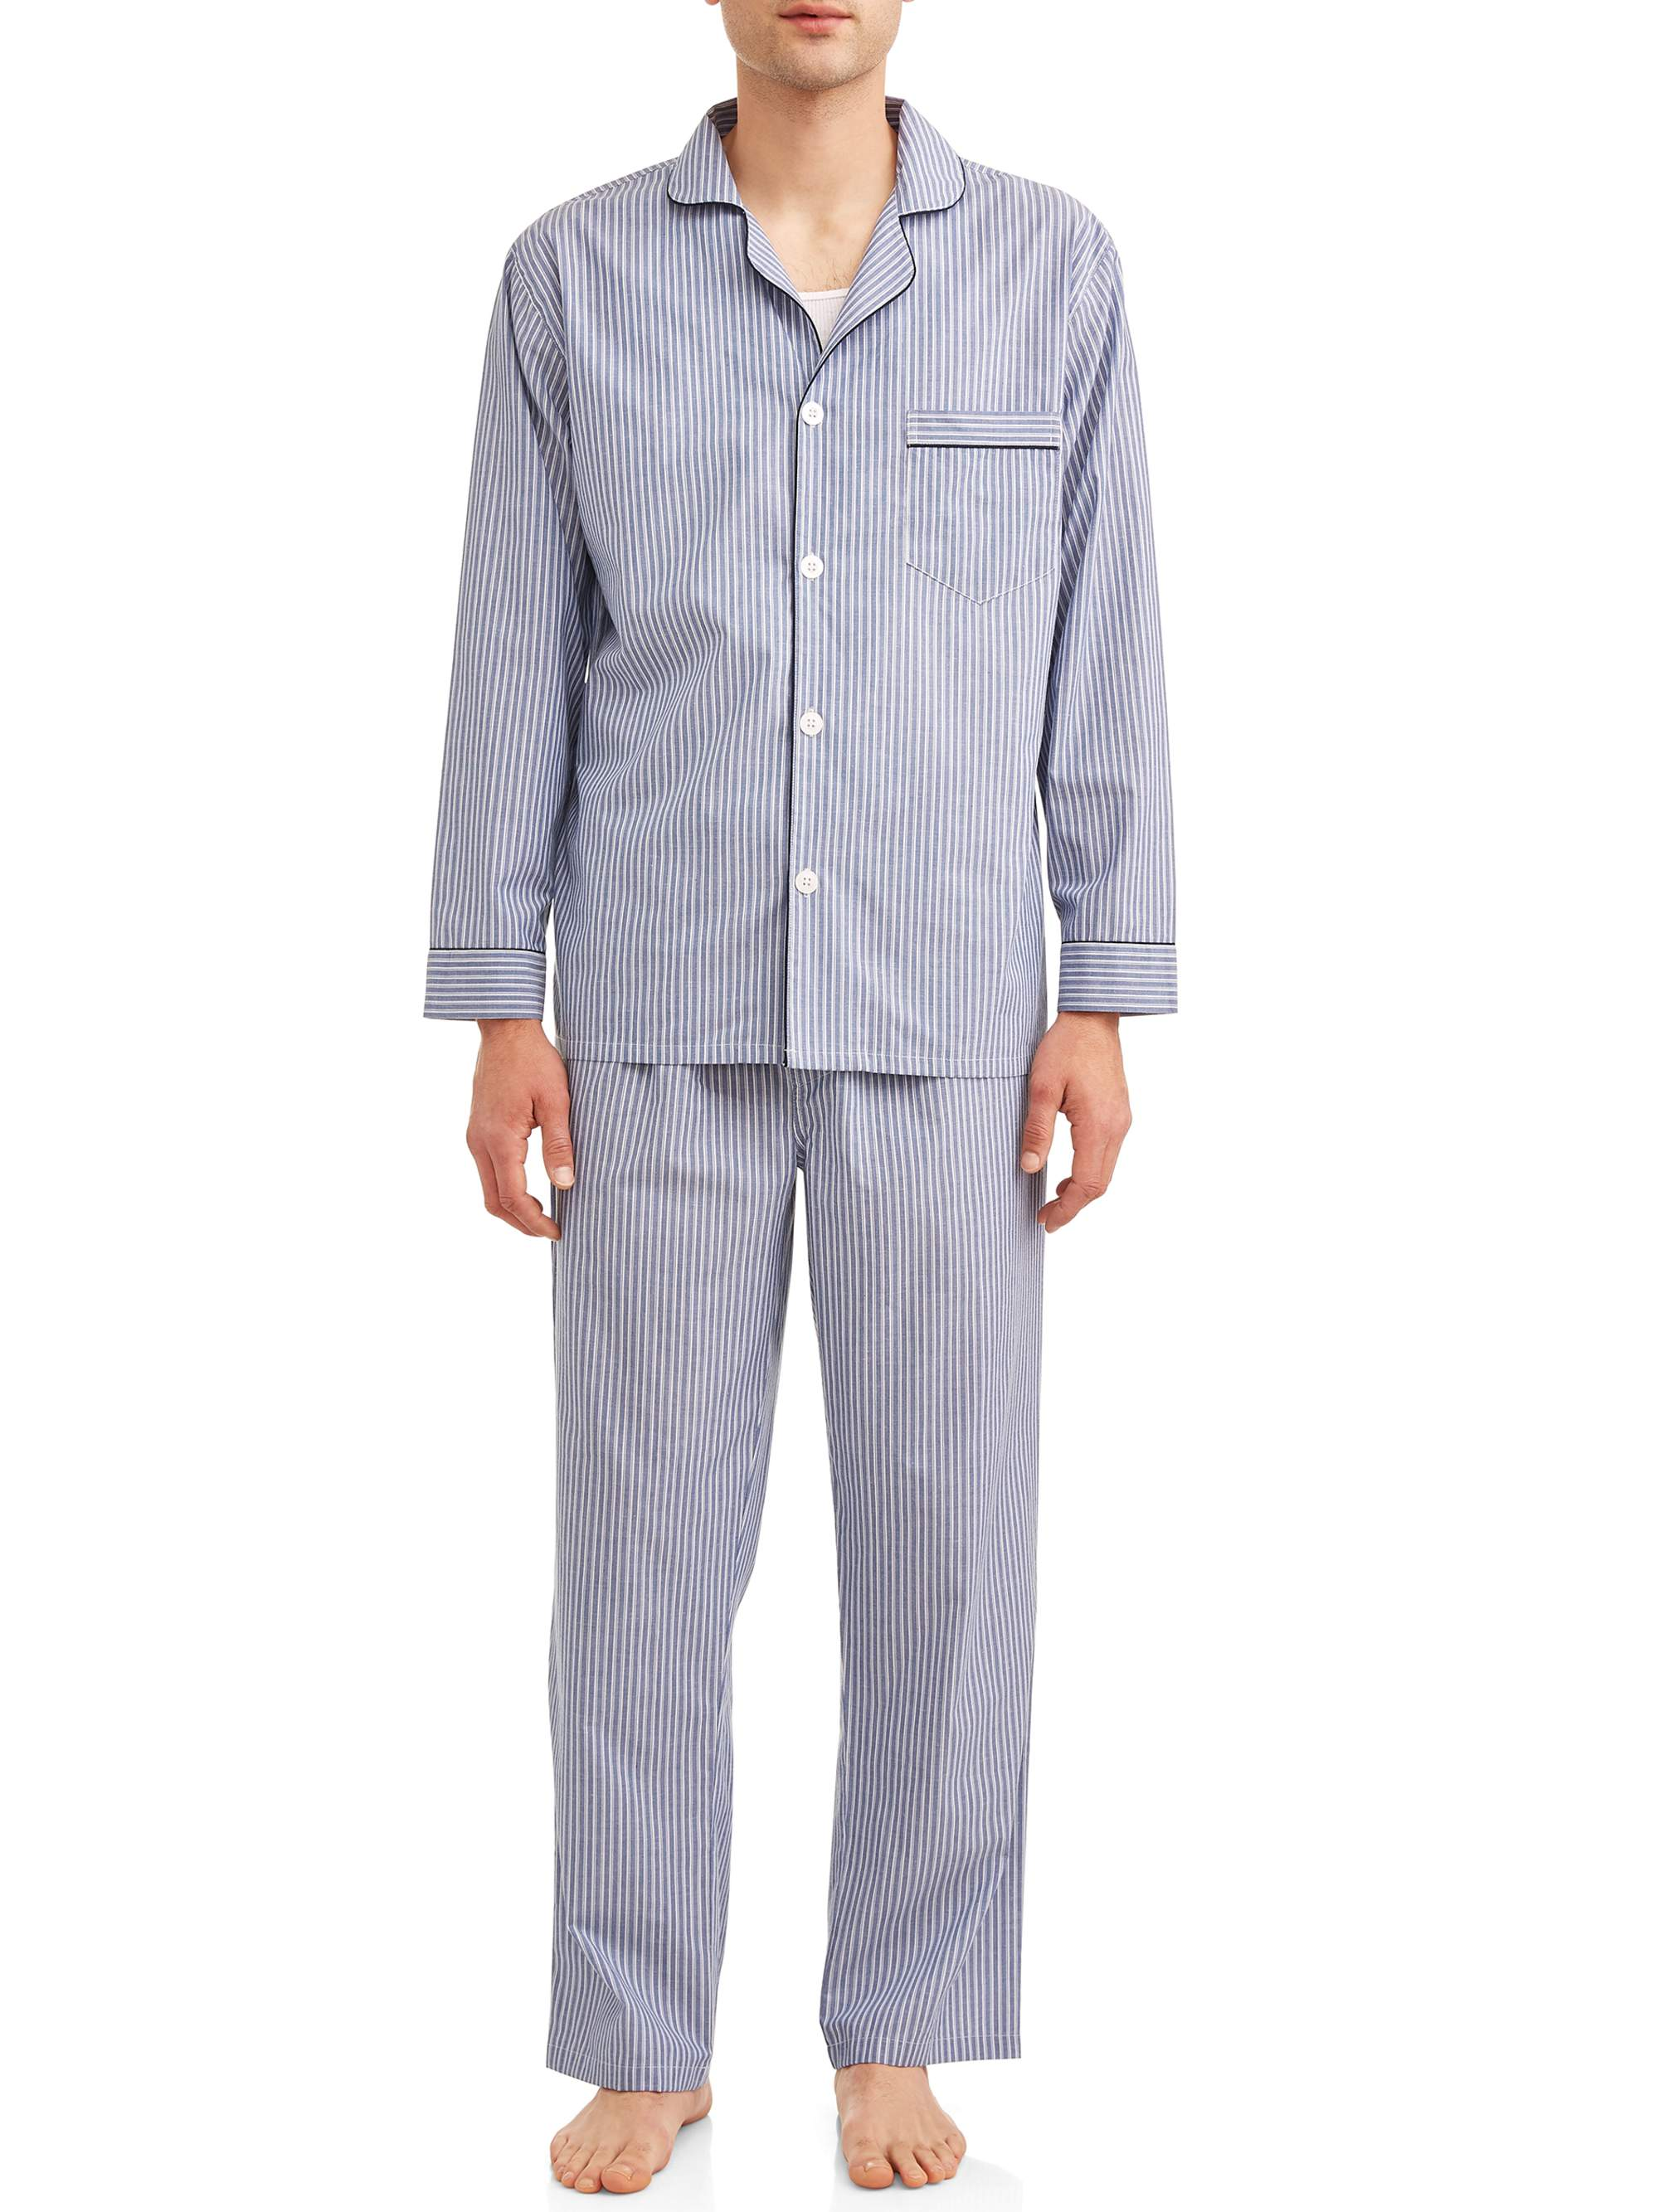 Hanes Mens 2-Piece Blue Striped Woven Sleepwear Pajama Set Sleep Set